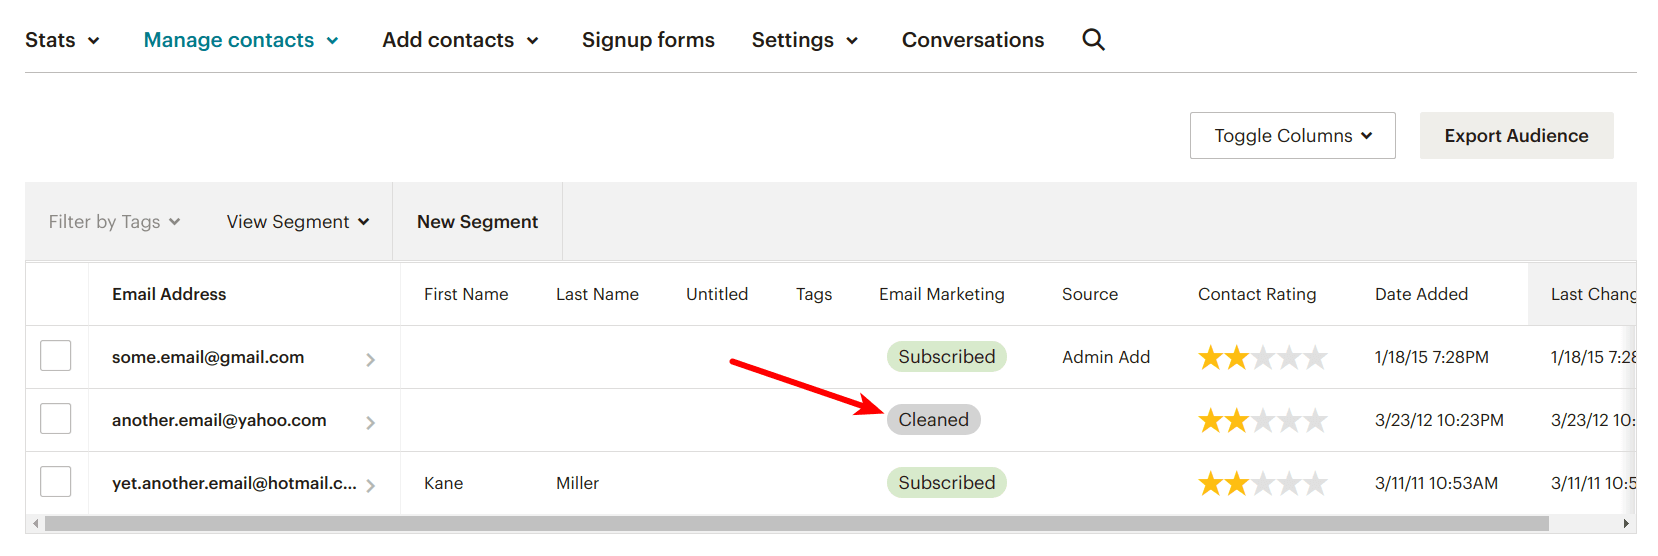 MailChimp subscriber categories - cleaned